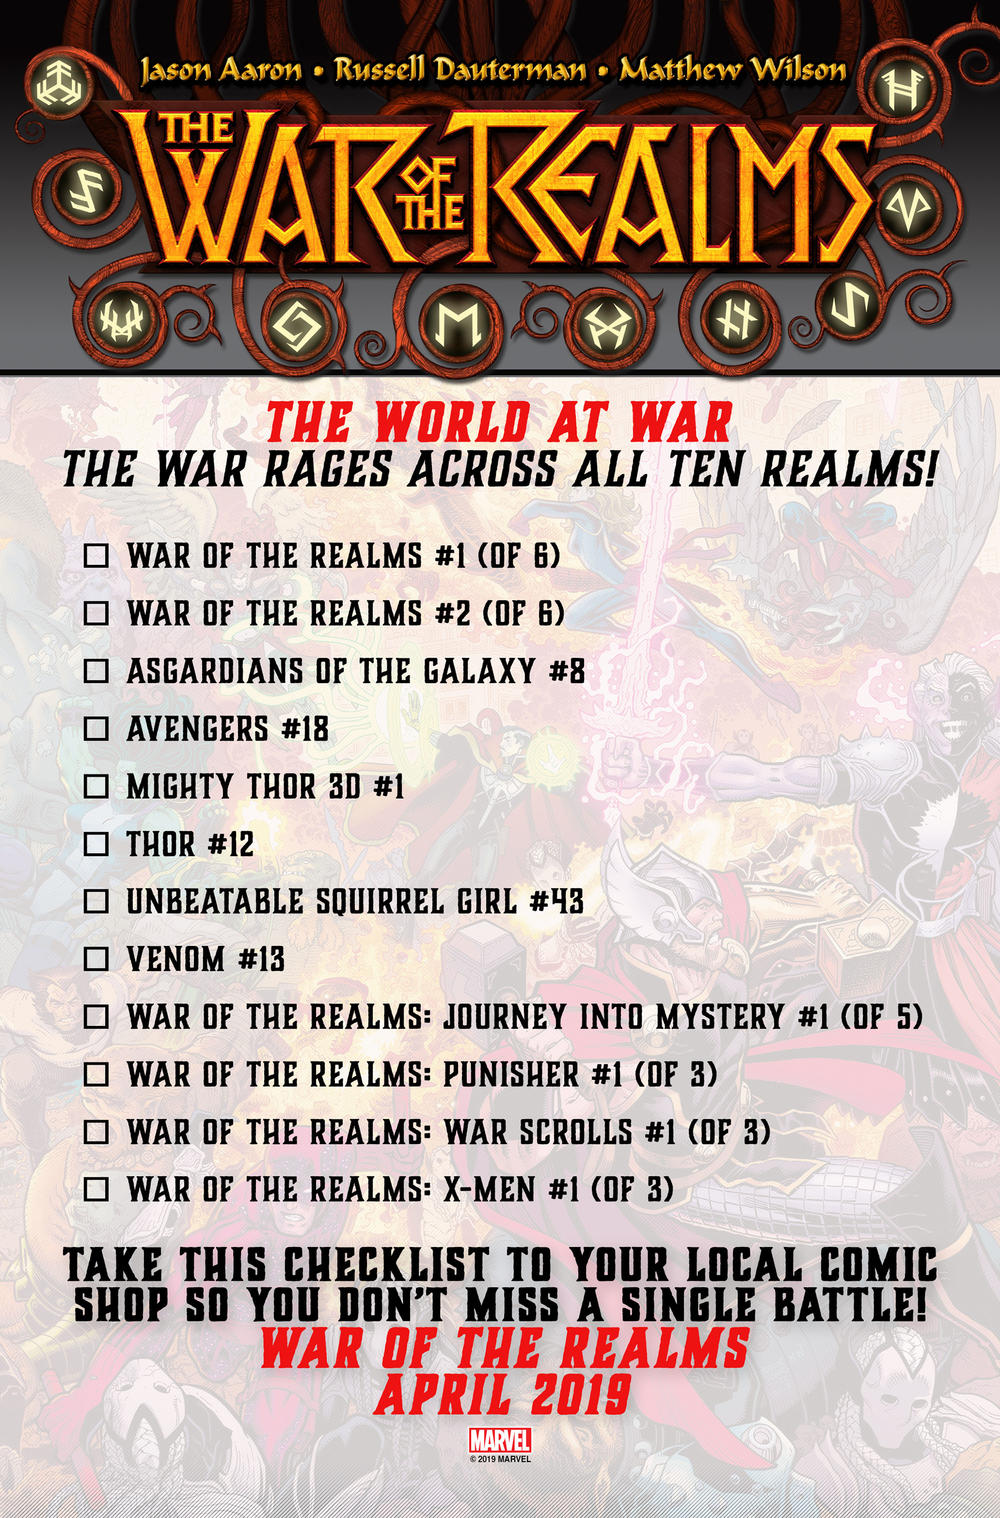 War of the Realms April checklist